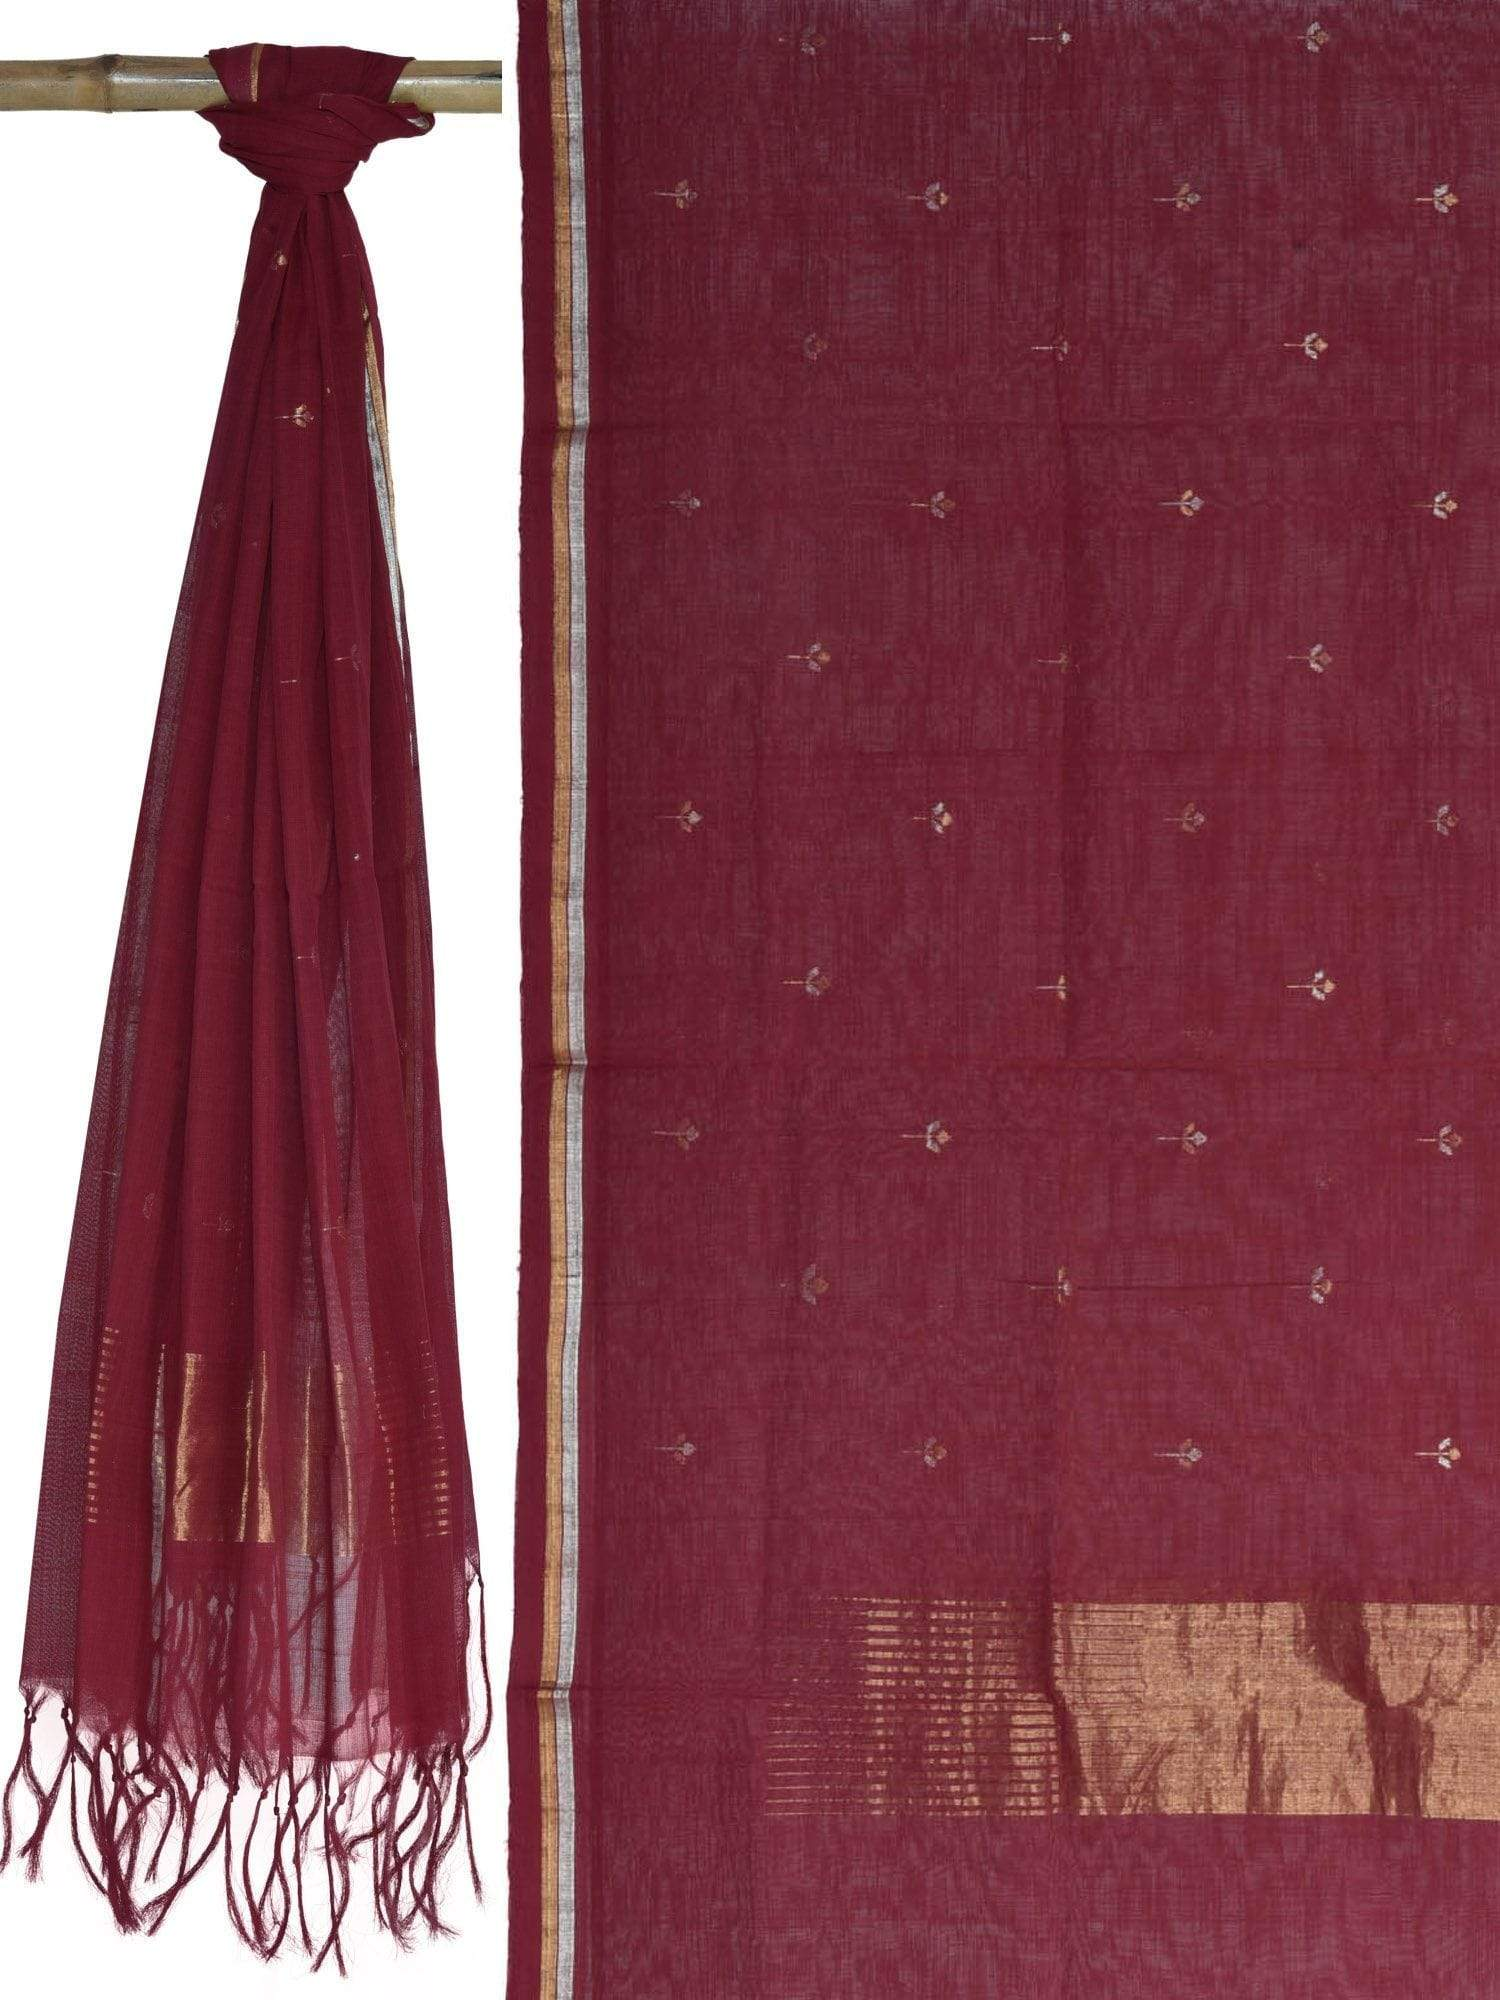 Maroon Khadi Cotton Handloom Dupatta with Buta Design ds1642